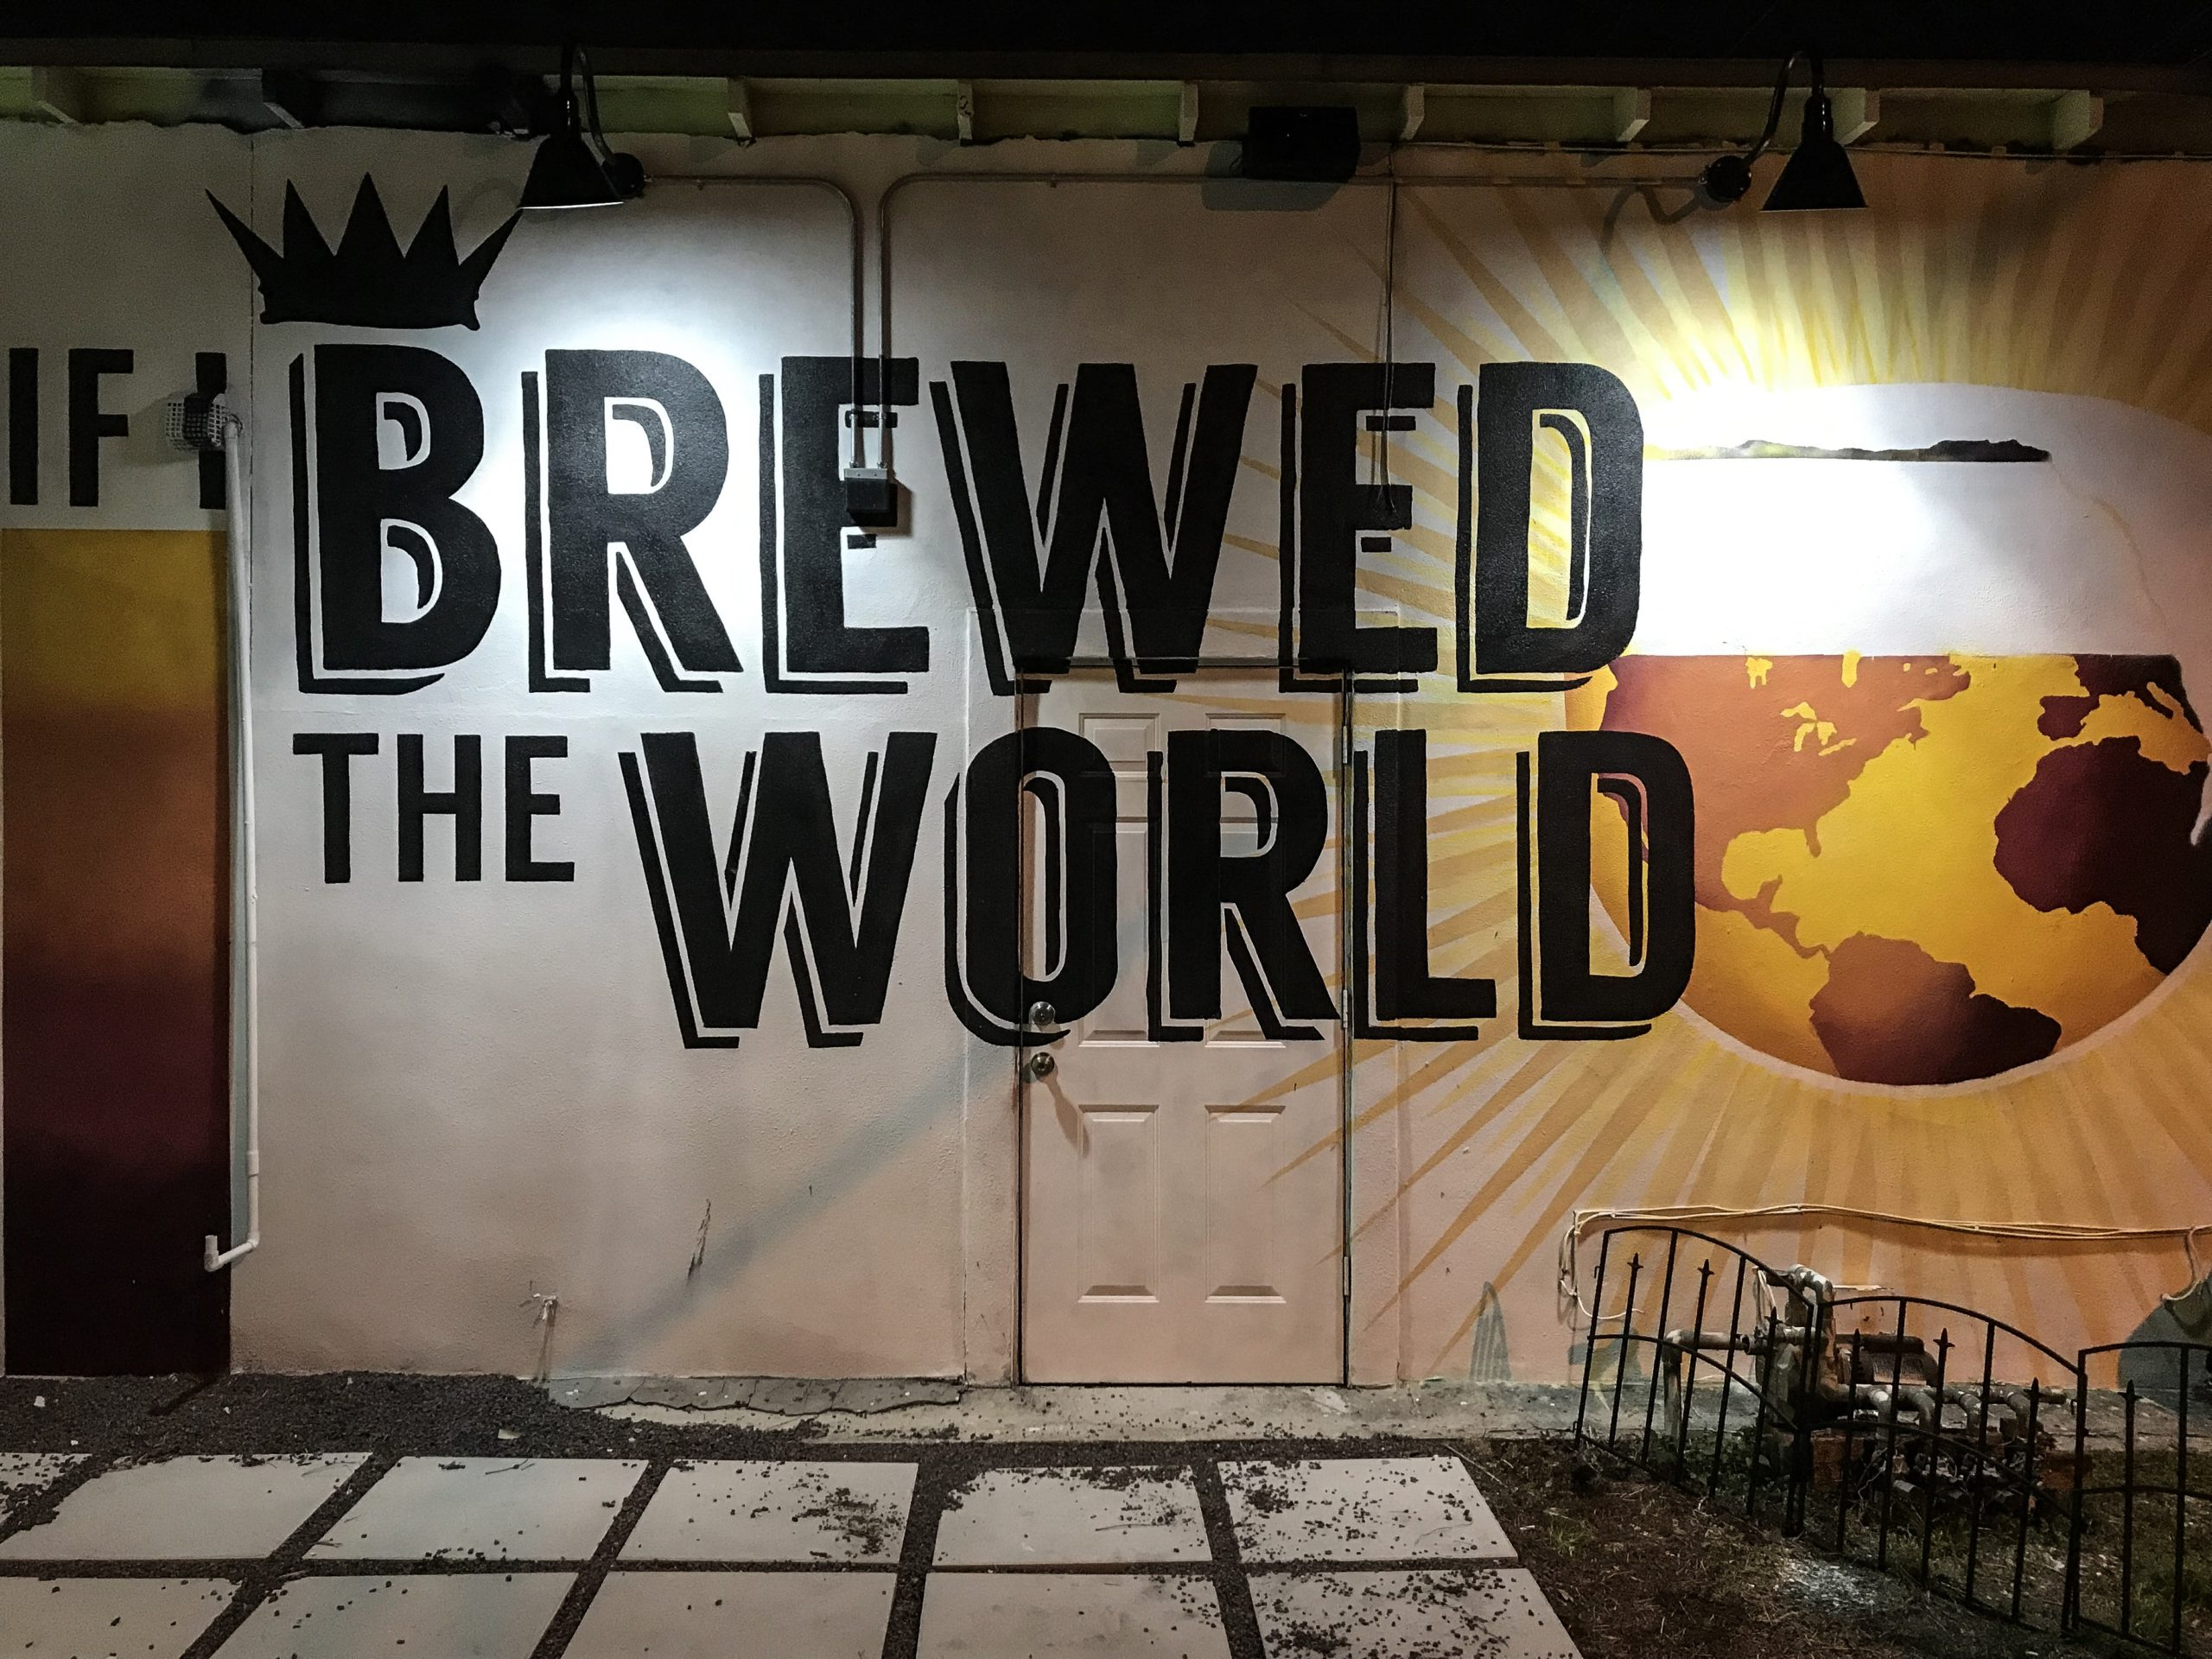 If I Brewed the World